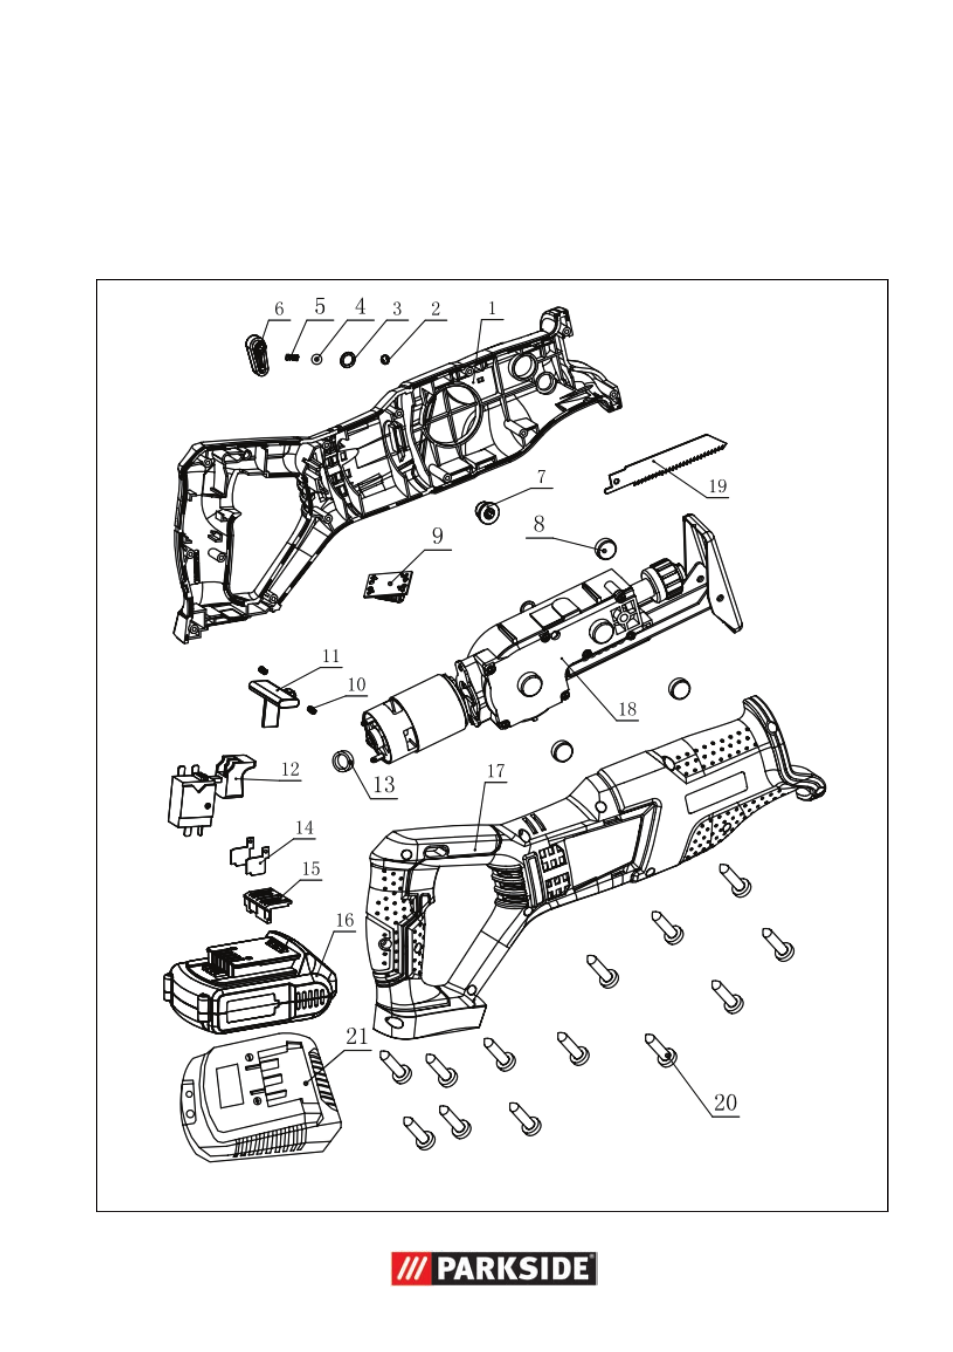 Parkside Pssa 18 A1 User Manual Page 137 140